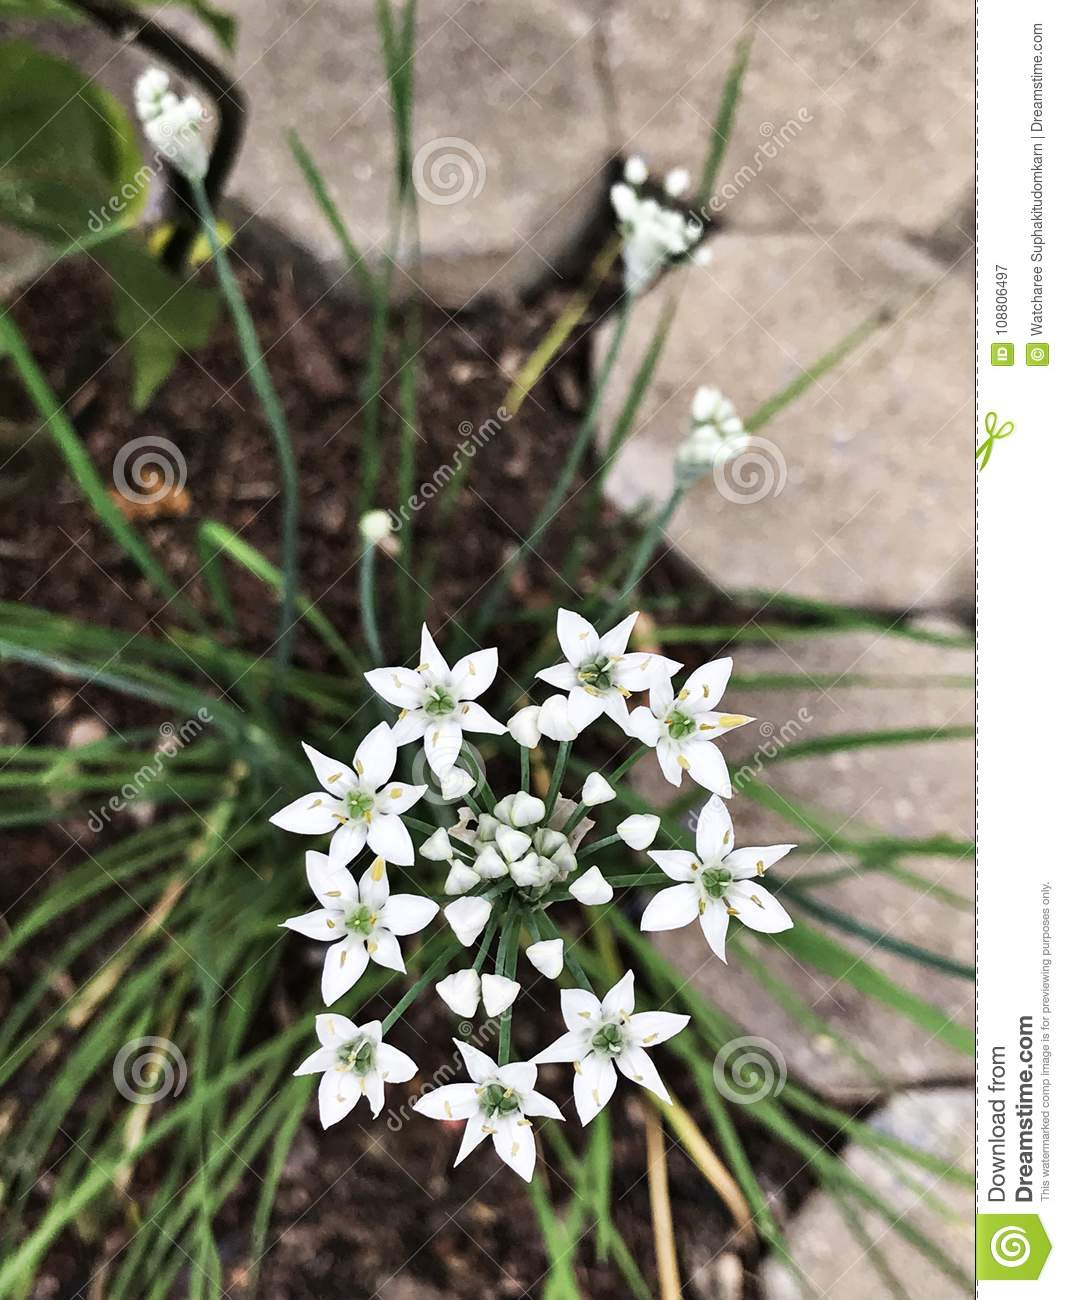 Ornithogalum umbellatum or Grass lily or Nap-at-noon or Eleven o`clock lady or The garden star-of-Bethlehem flowers.